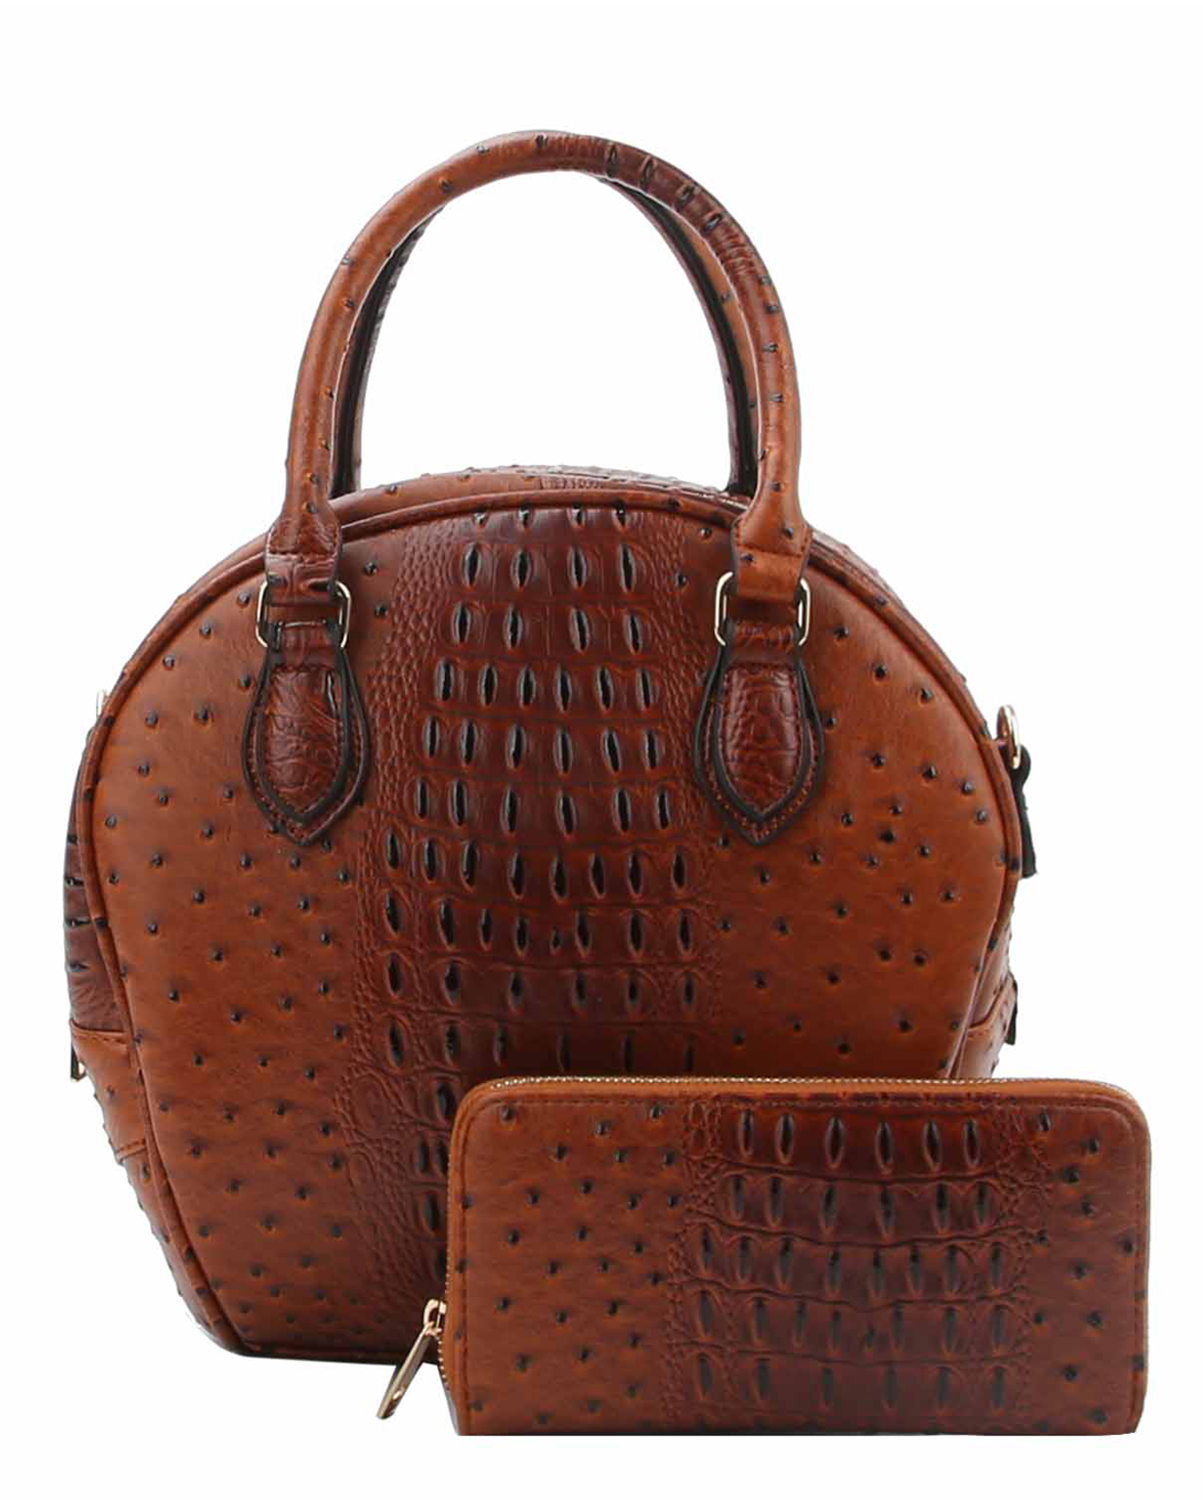 51cb66d328 Get Incredible Discount Prices on our Wholesale Fashion Handbags Today!